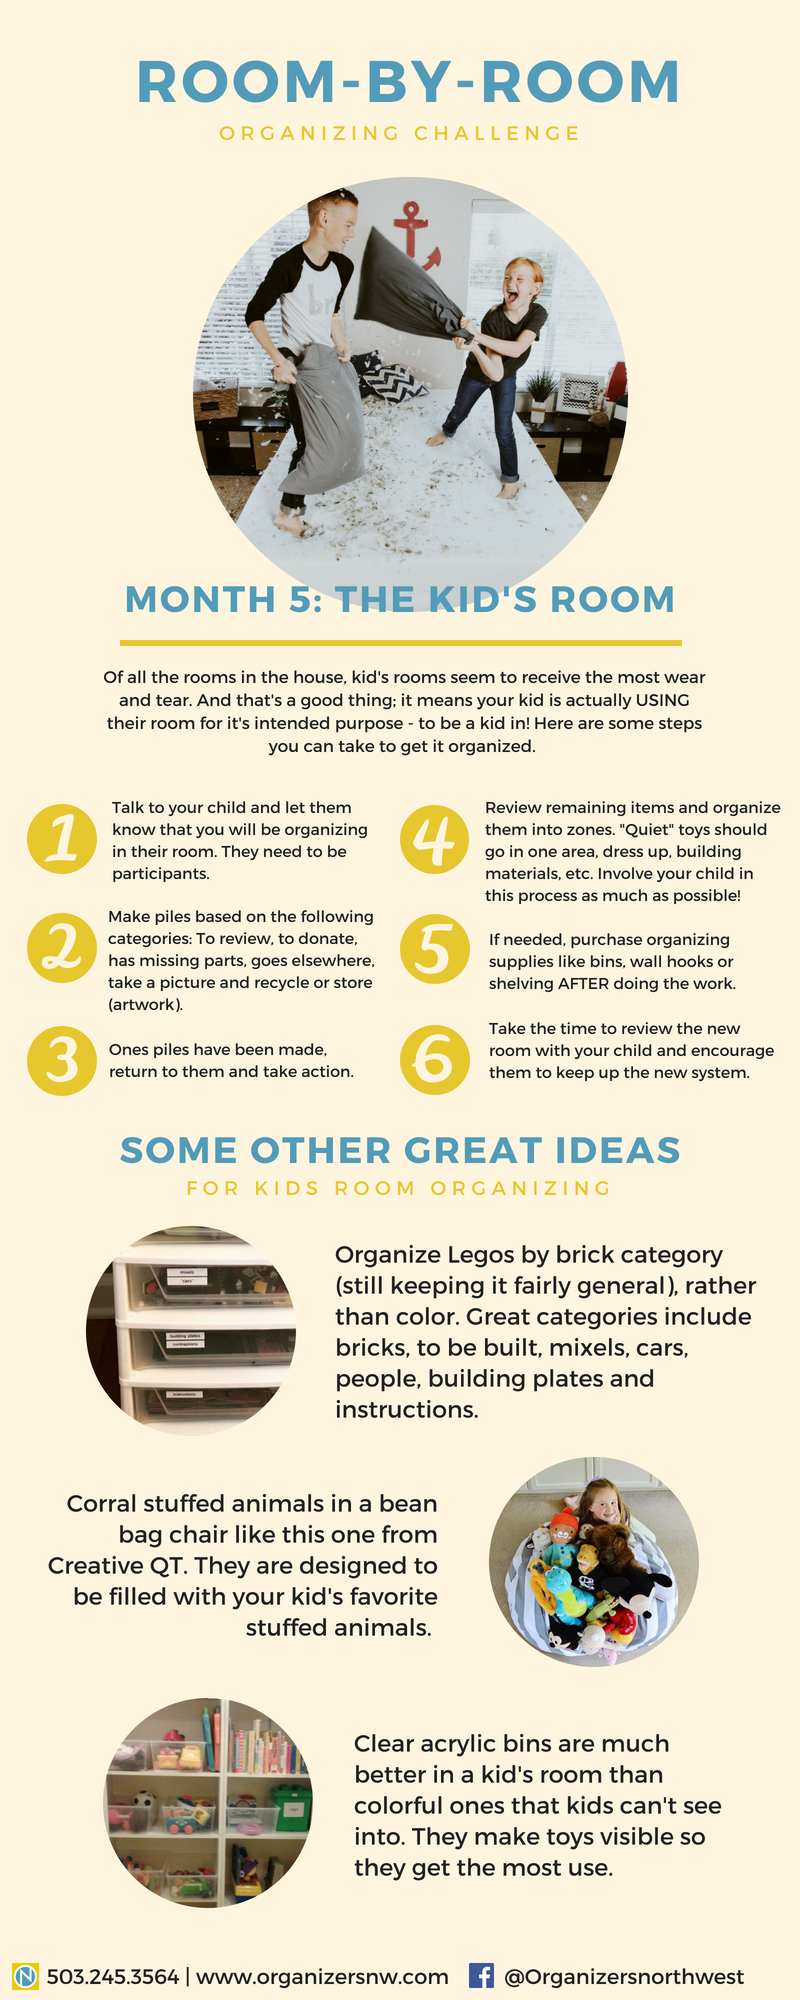 Room-by-room Organizing Challenge Kids Room Infographic